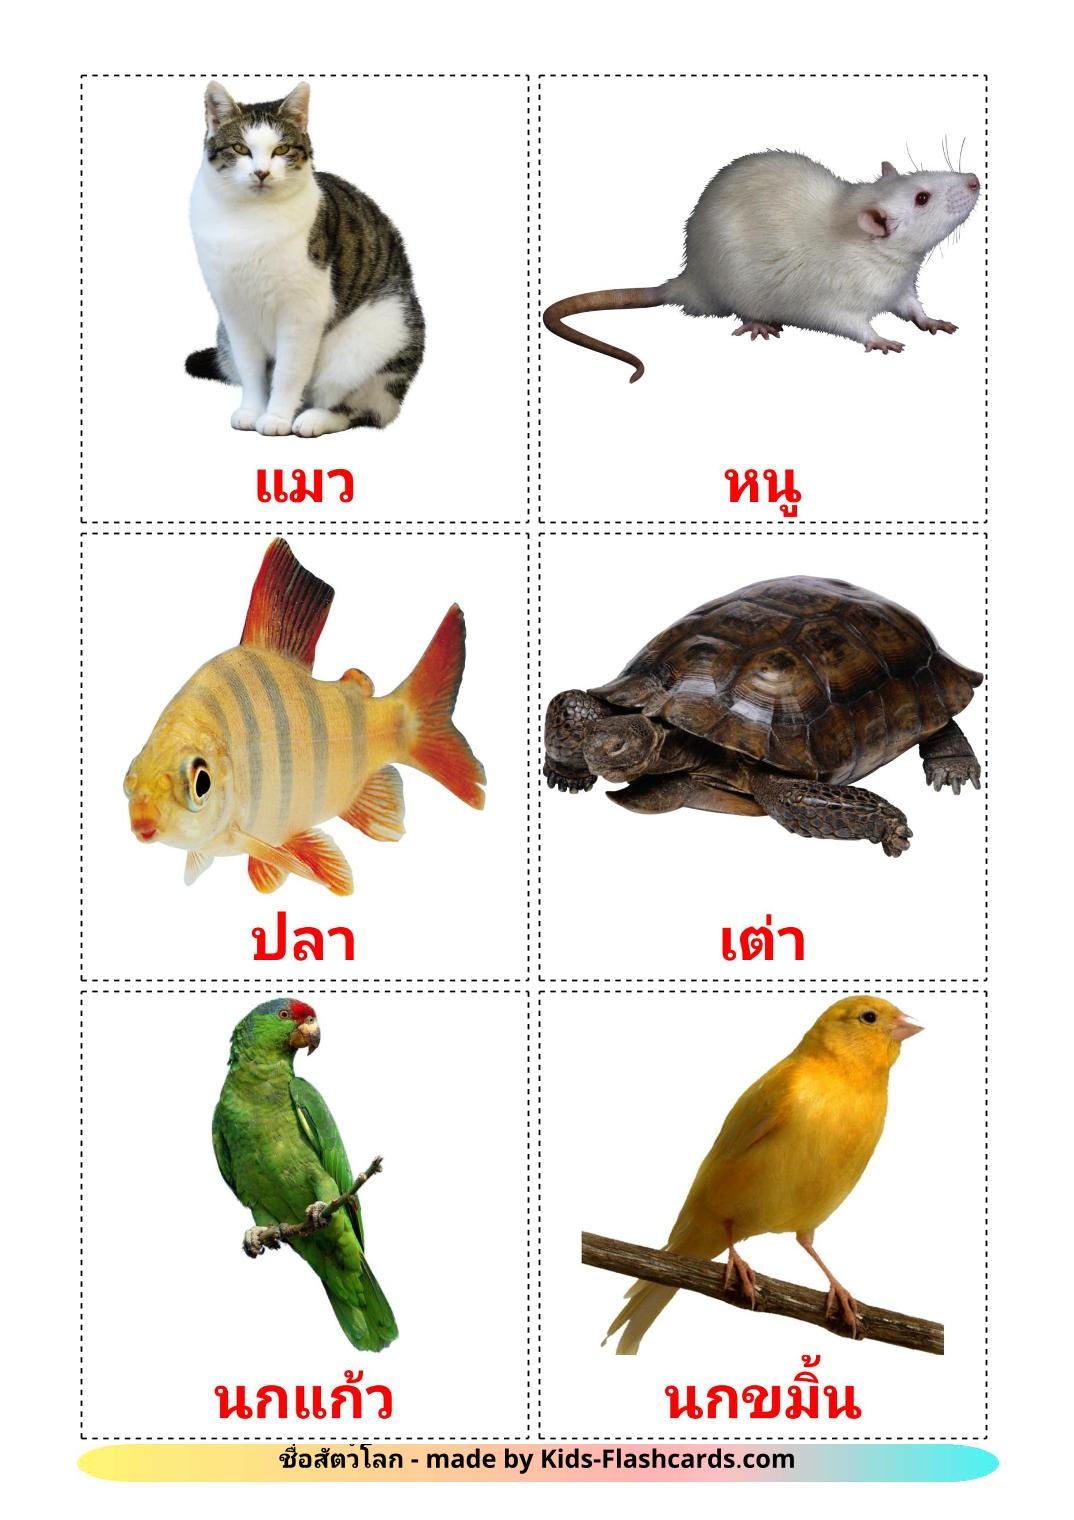 Domestic animals - 10 Free Printable thai Flashcards